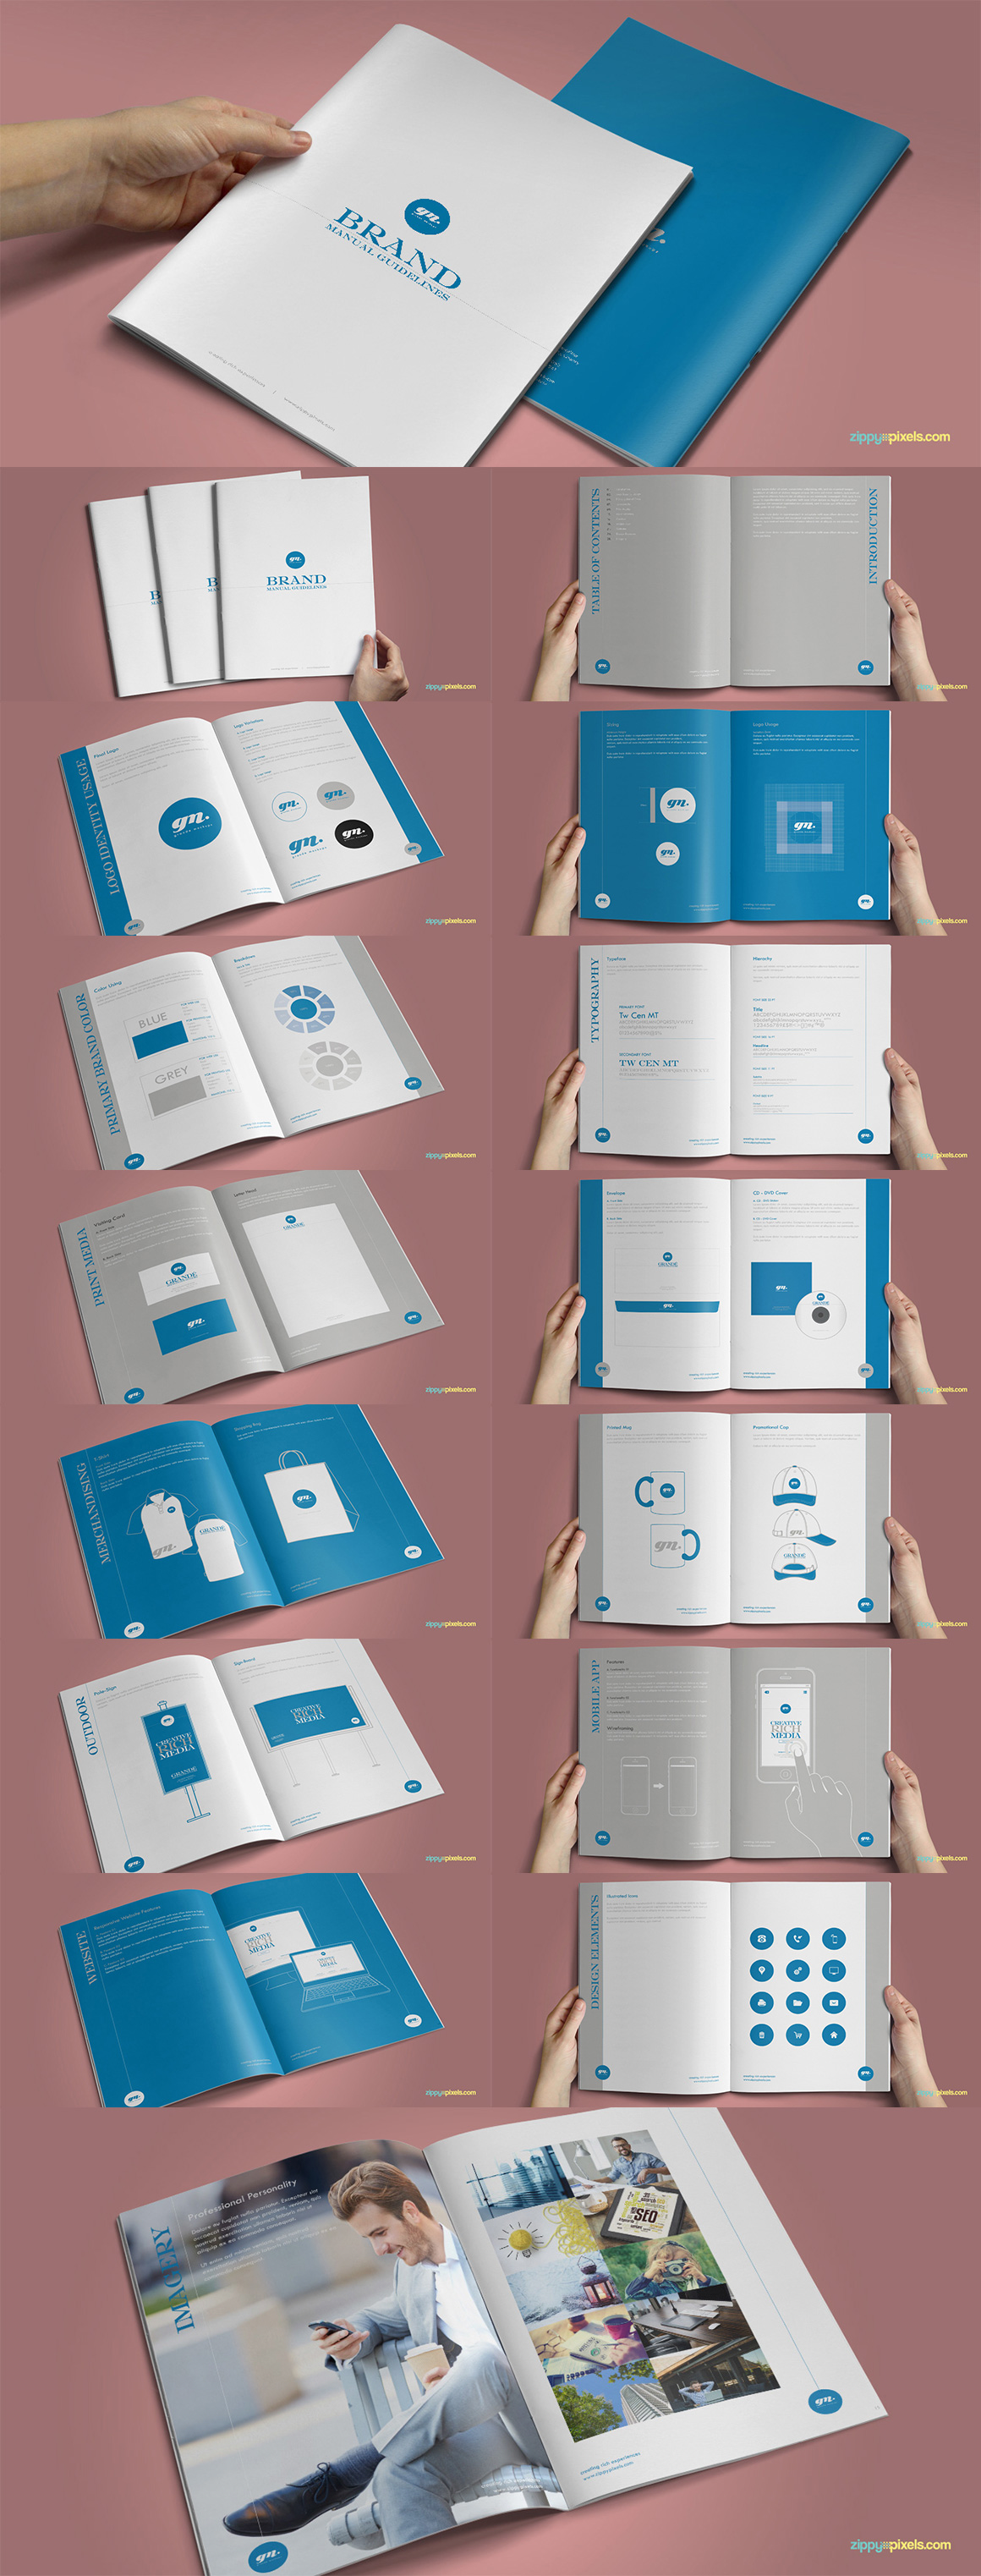 Style Guide & Brand Book Templates-strip3